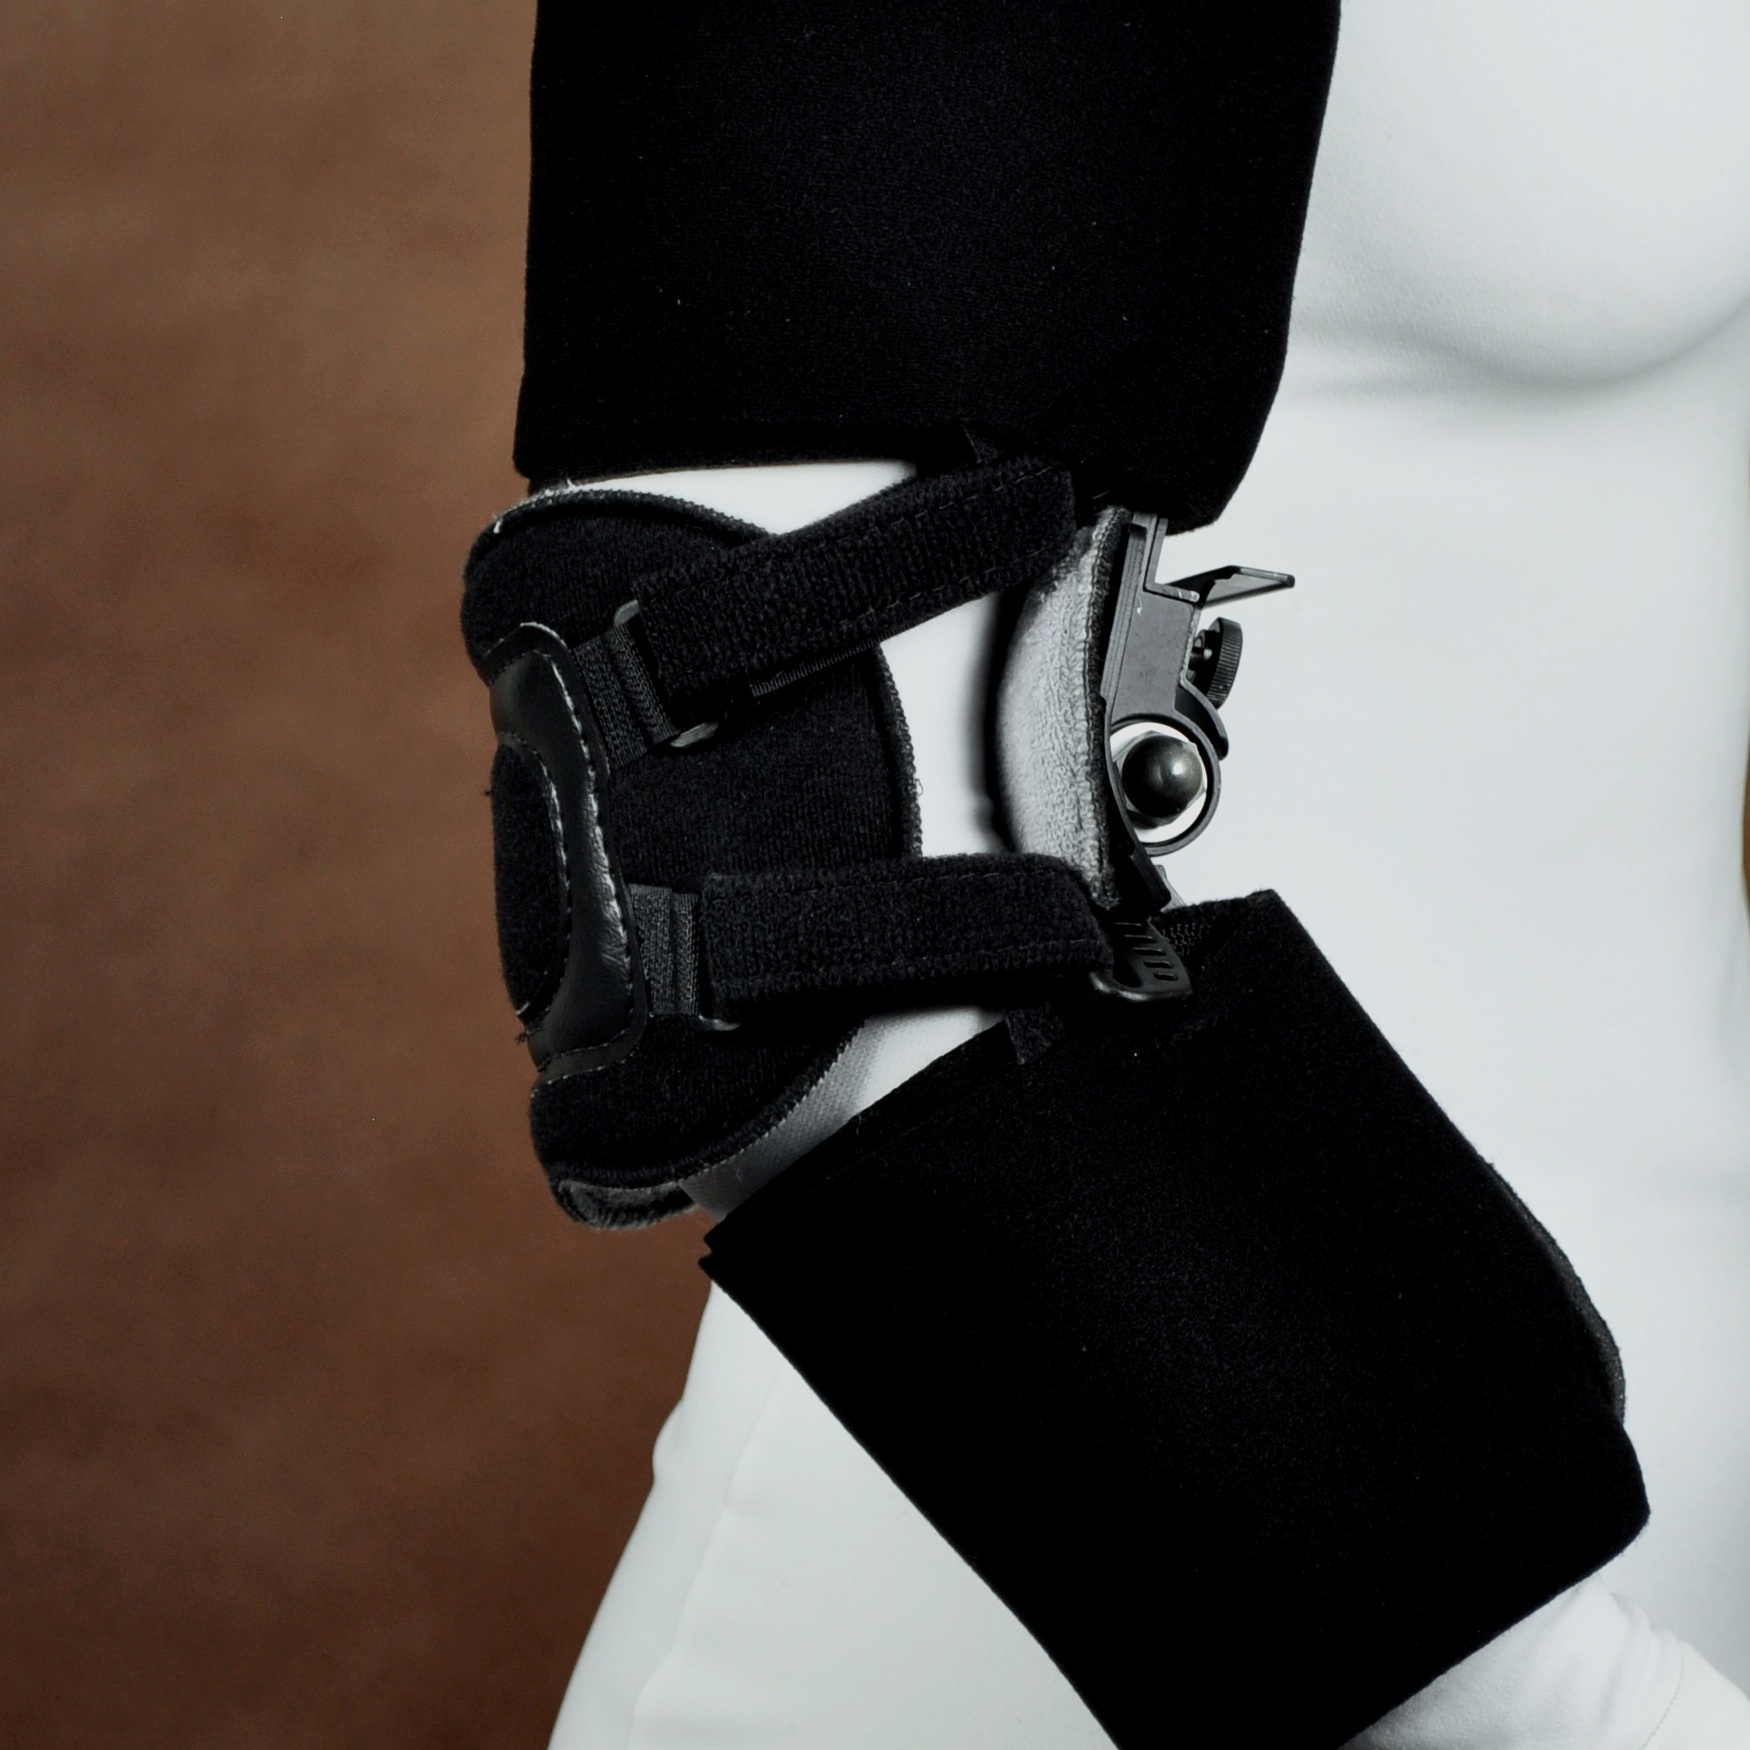 The 1300 QUAD provides a dynamic, ratchet style stretch to the tissues